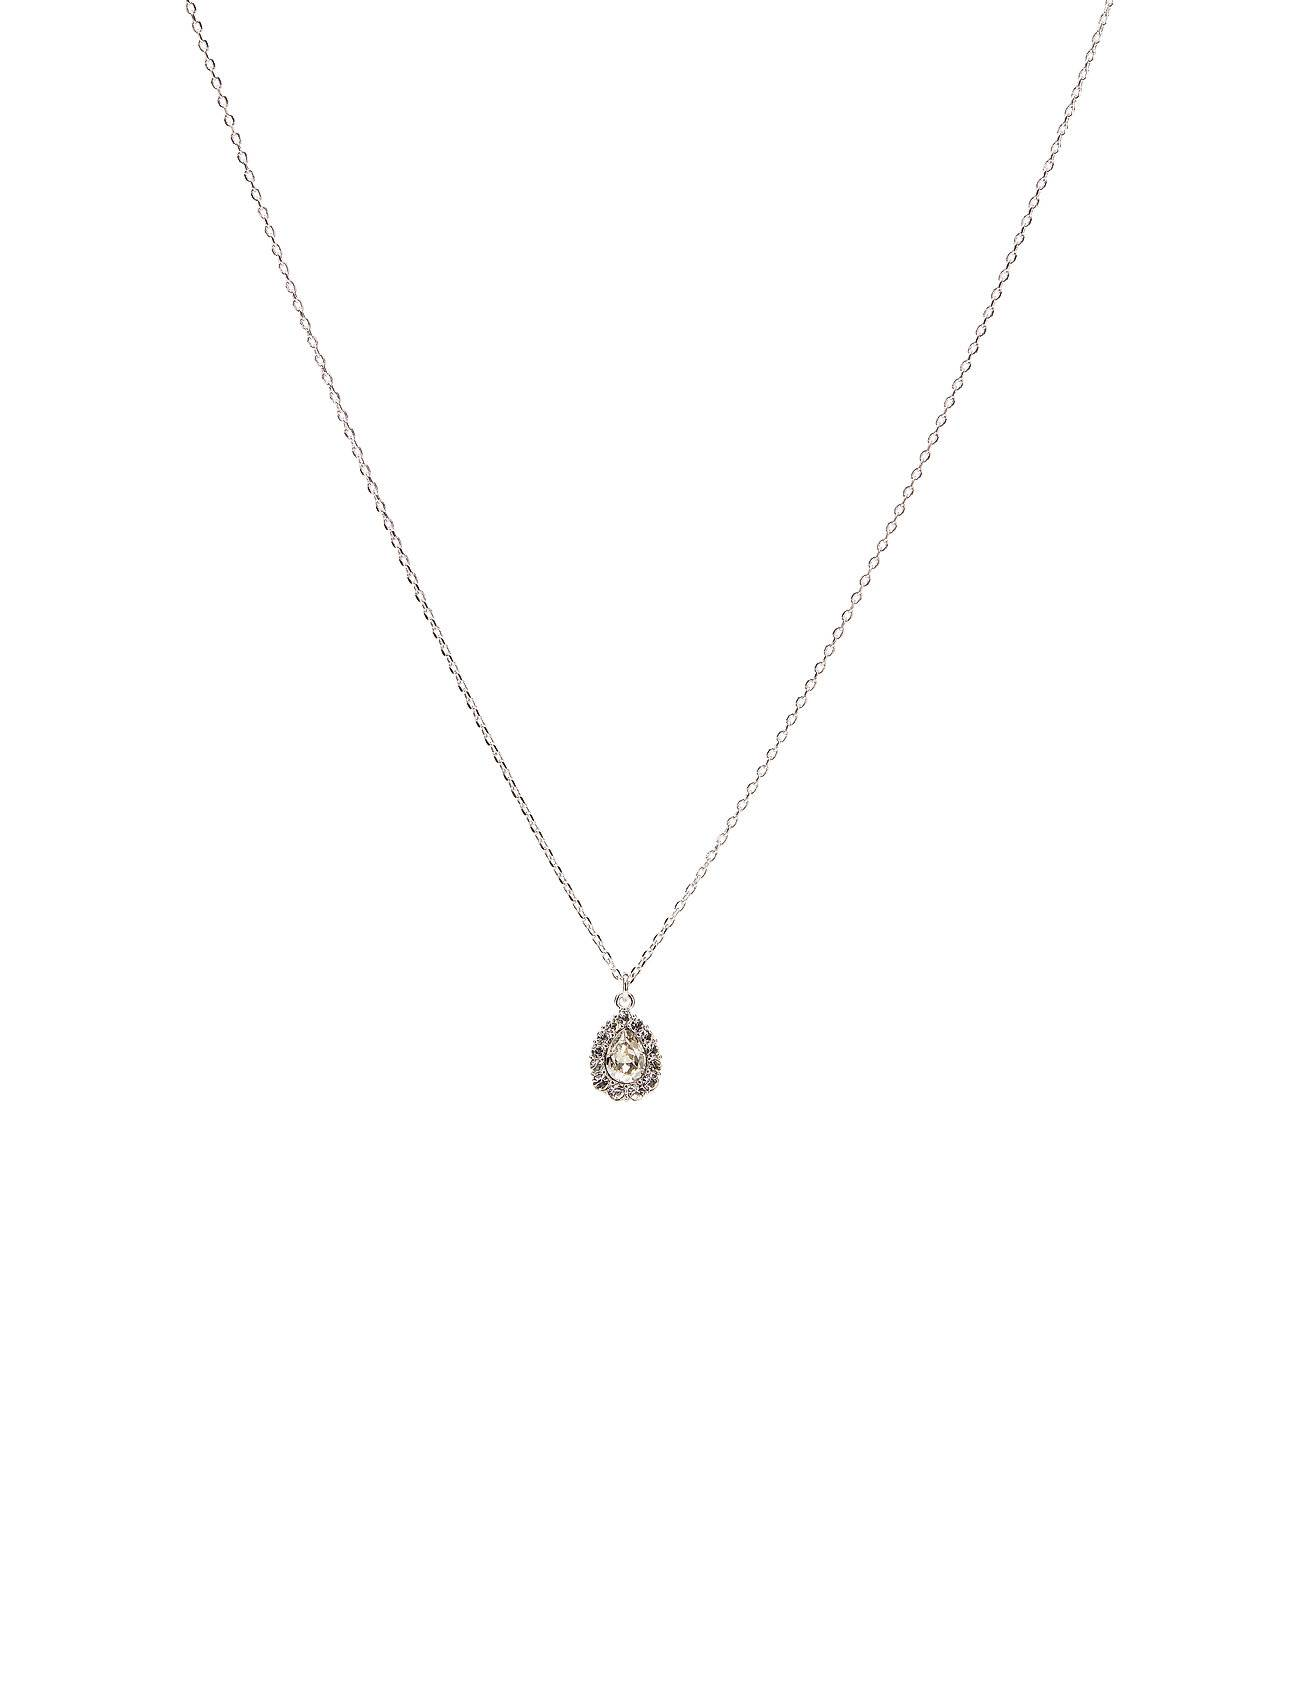 LILY AND ROSE Amelie Necklace - Crystal Accessories Jewellery Necklaces Dainty Necklaces Hopea LILY AND ROSE